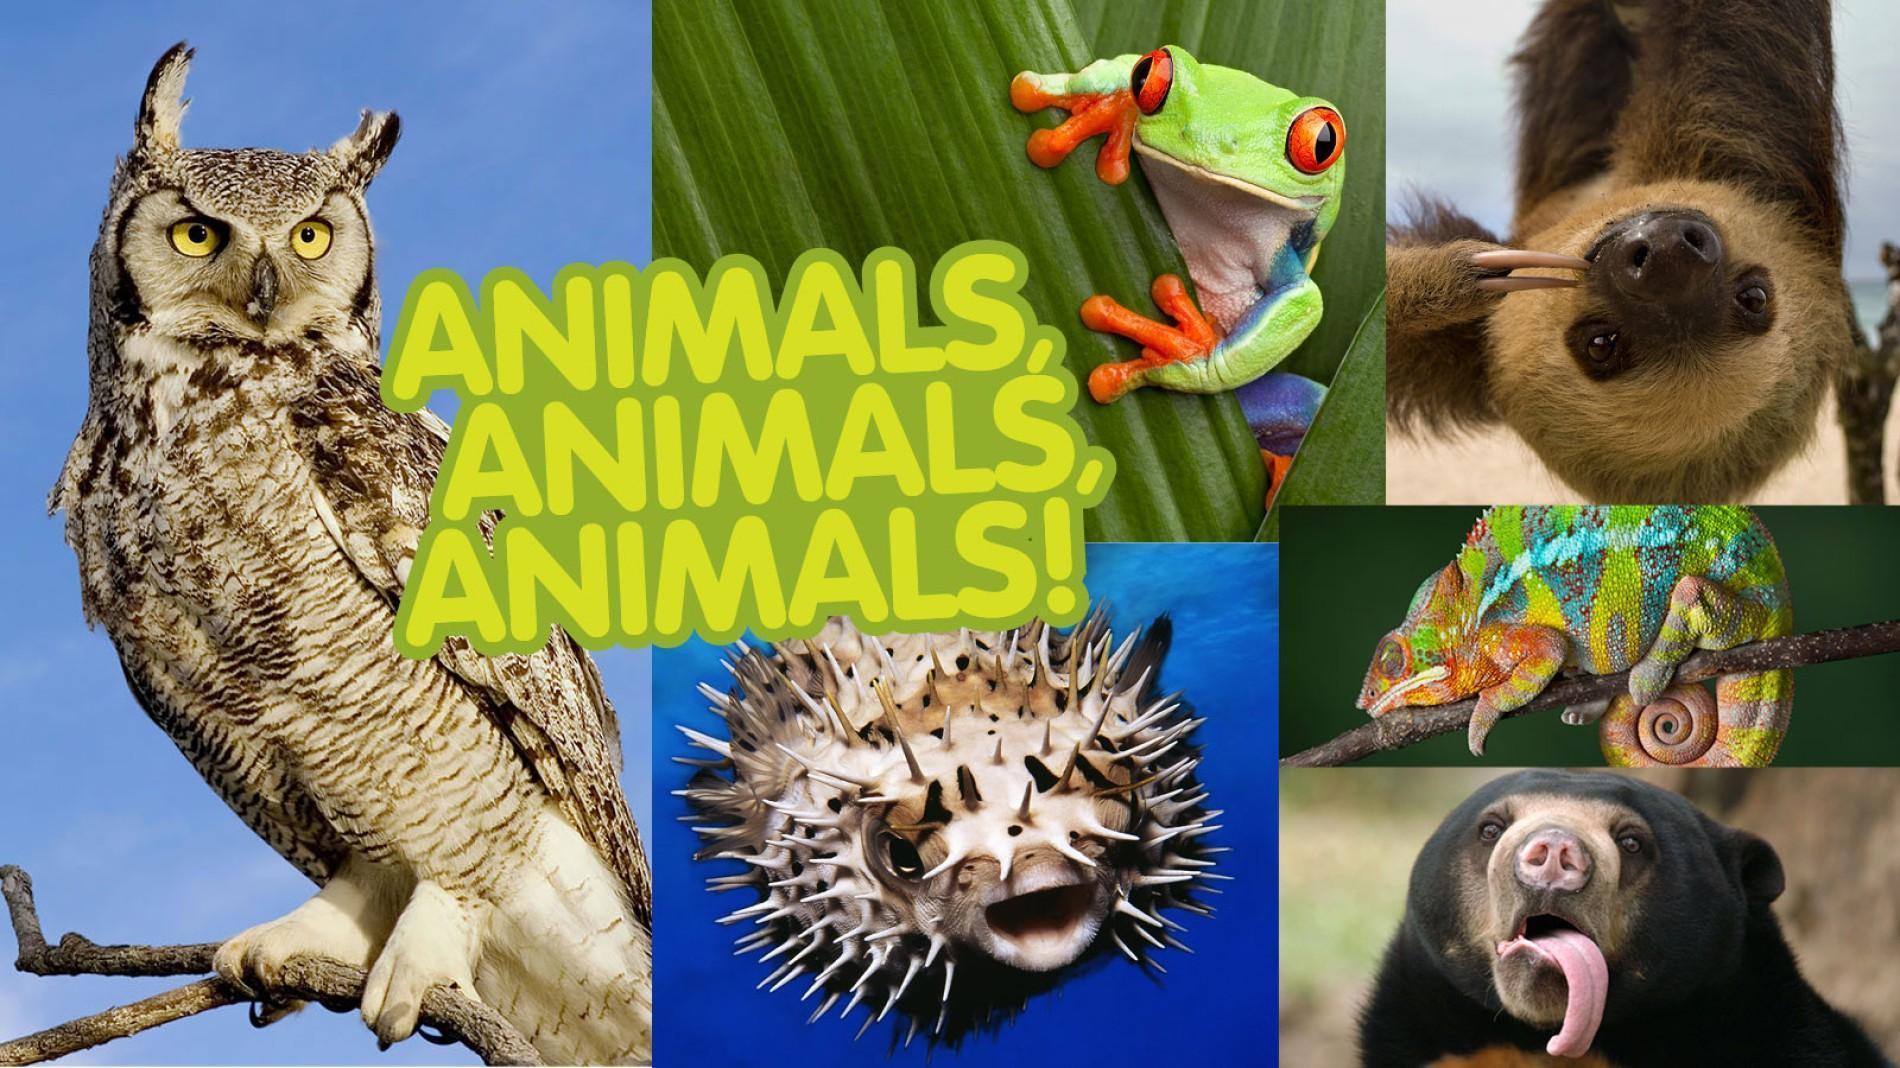 What animal is your favorite? (1)